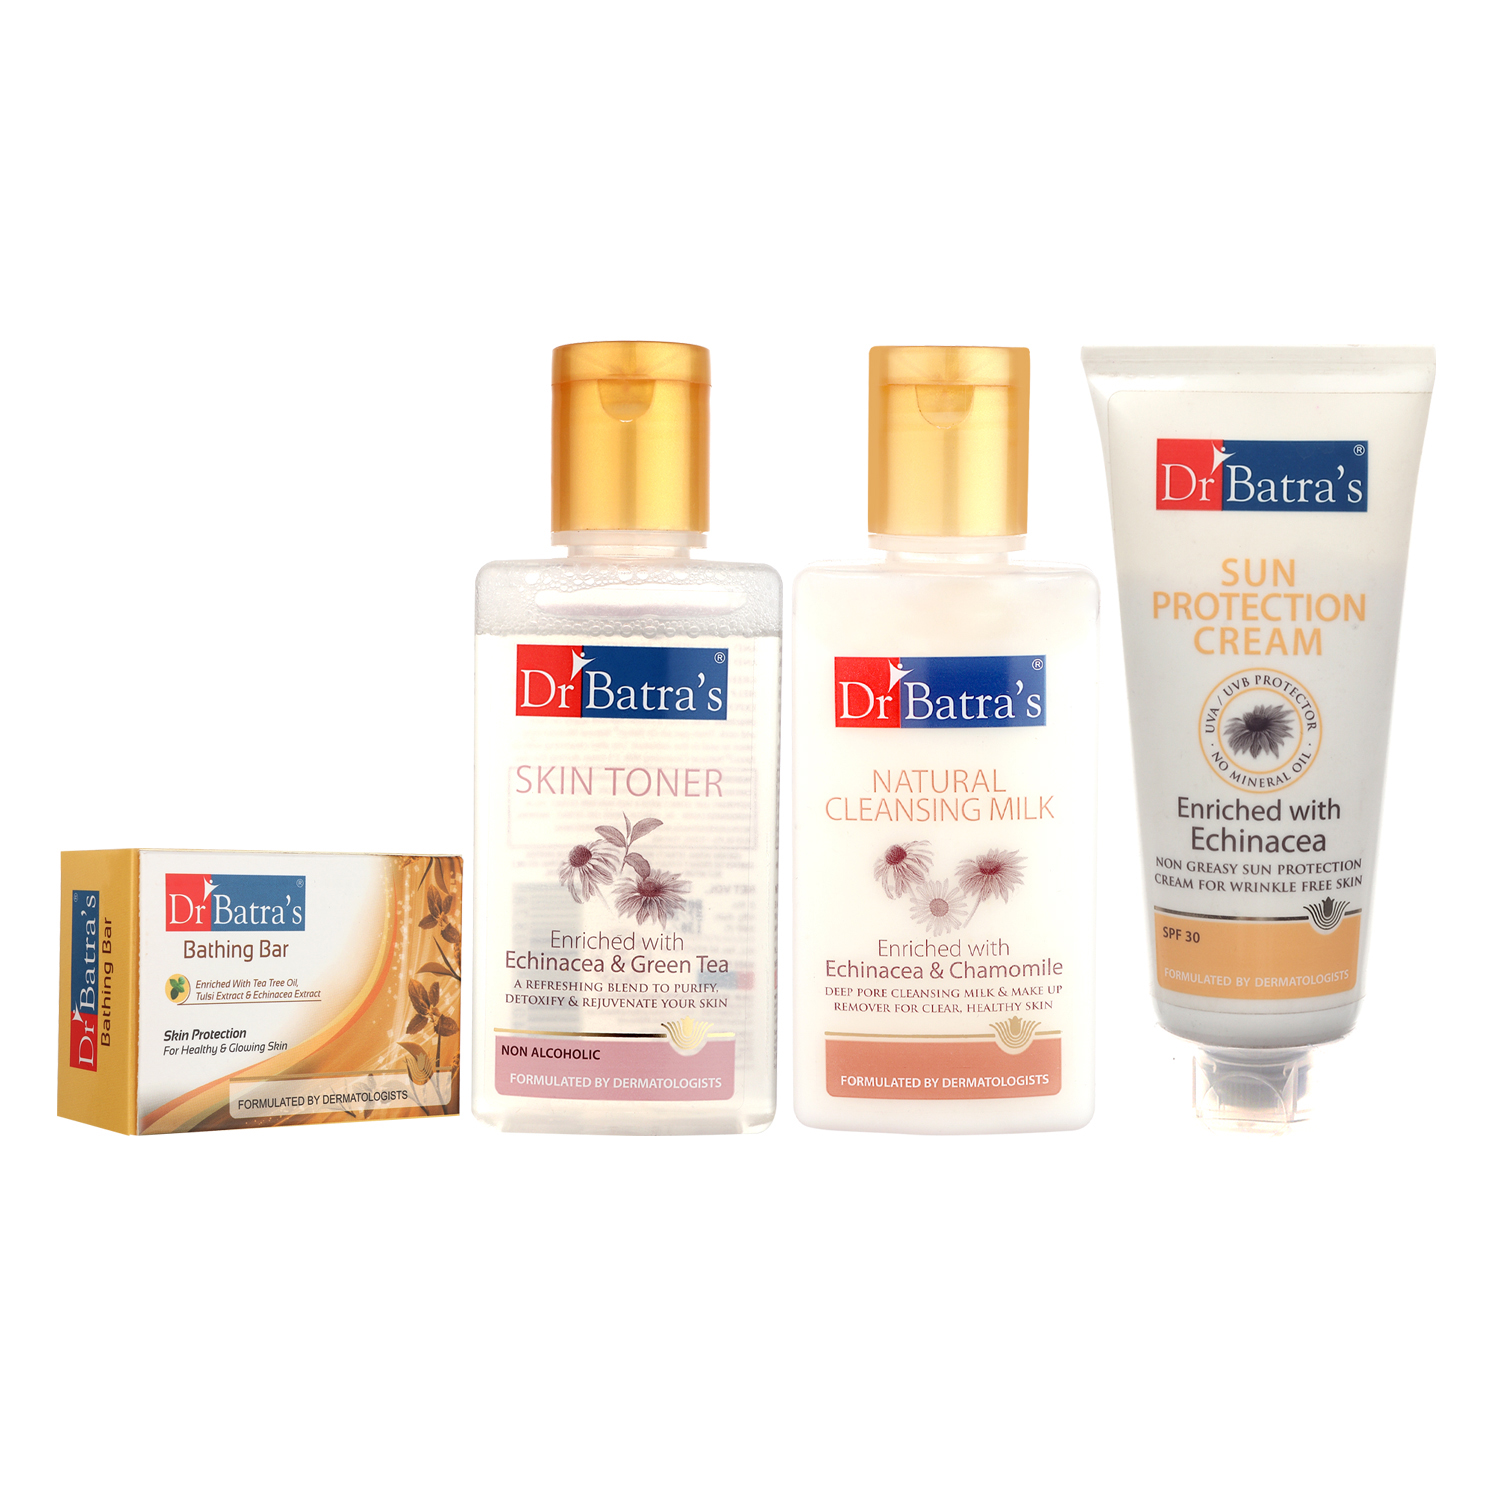 Dr Batra's | Dr Batra's Skin Toner 100ml, Natural Cleansing Milk 100 ml, Sun Protection Cream 100 ml and Skin Protection Bathing Bar 125G (Pack of 4 Men and Women)